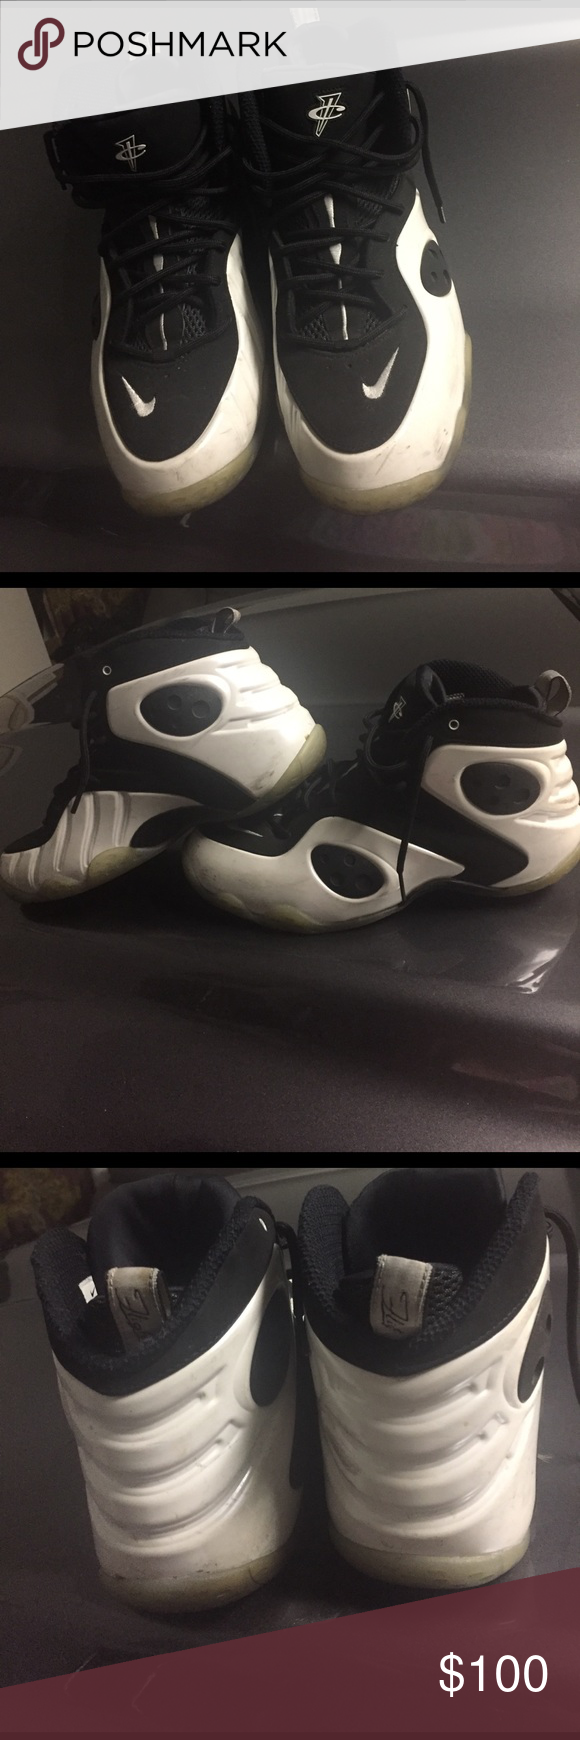 Nike Flight Size 10.5 Gently used, could use a cleaning Nike Shoes Sneakers